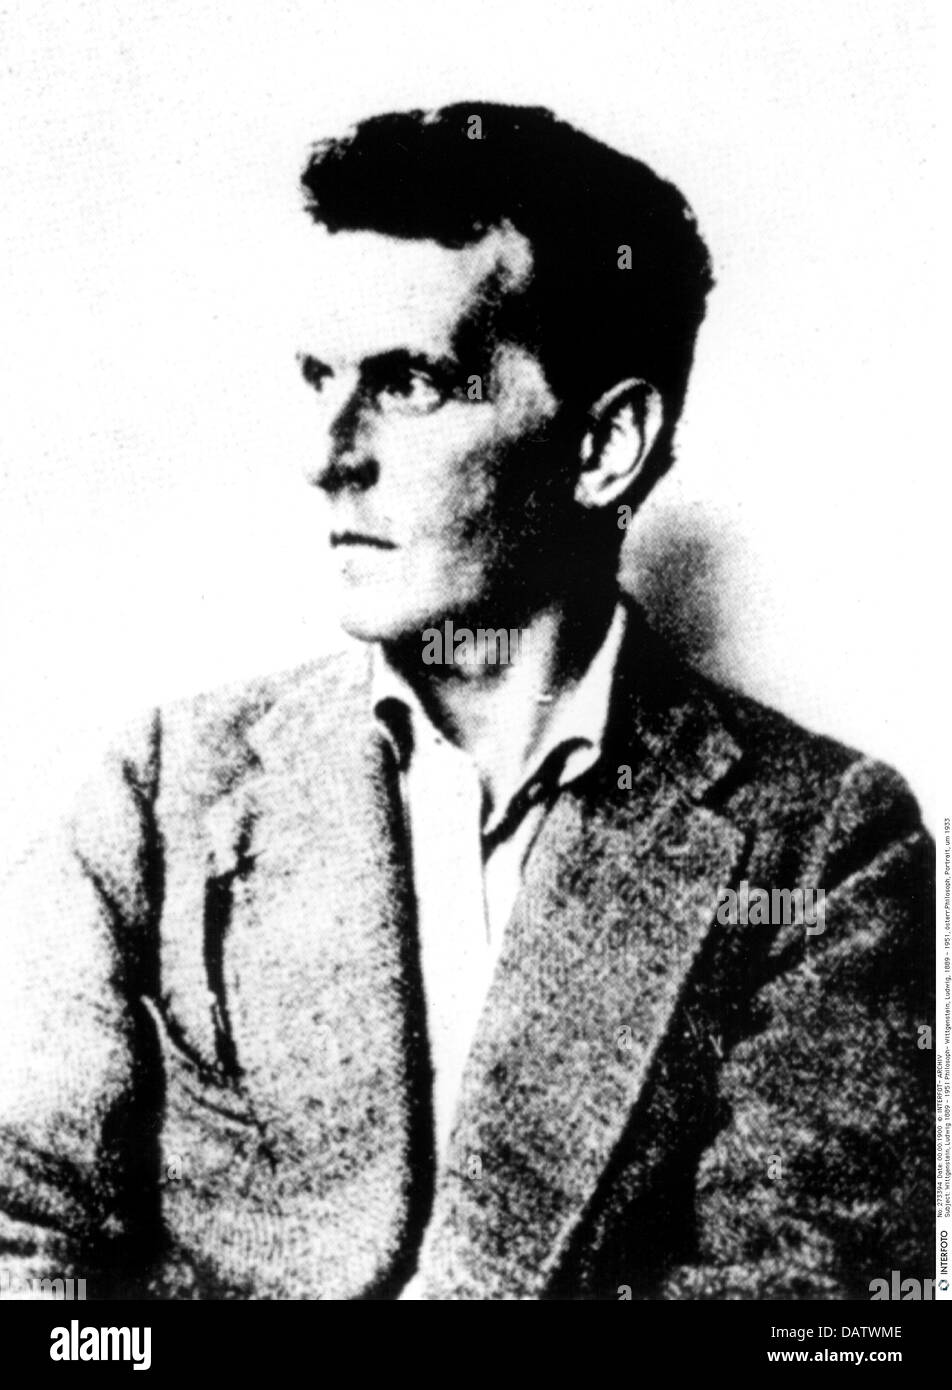 Wittgenstein, Ludwig, 26.4.1889 - 29.4.1951, Austrian philosopher, portrait, circa 1933, , Additional-Rights-Clearances - Stock Image